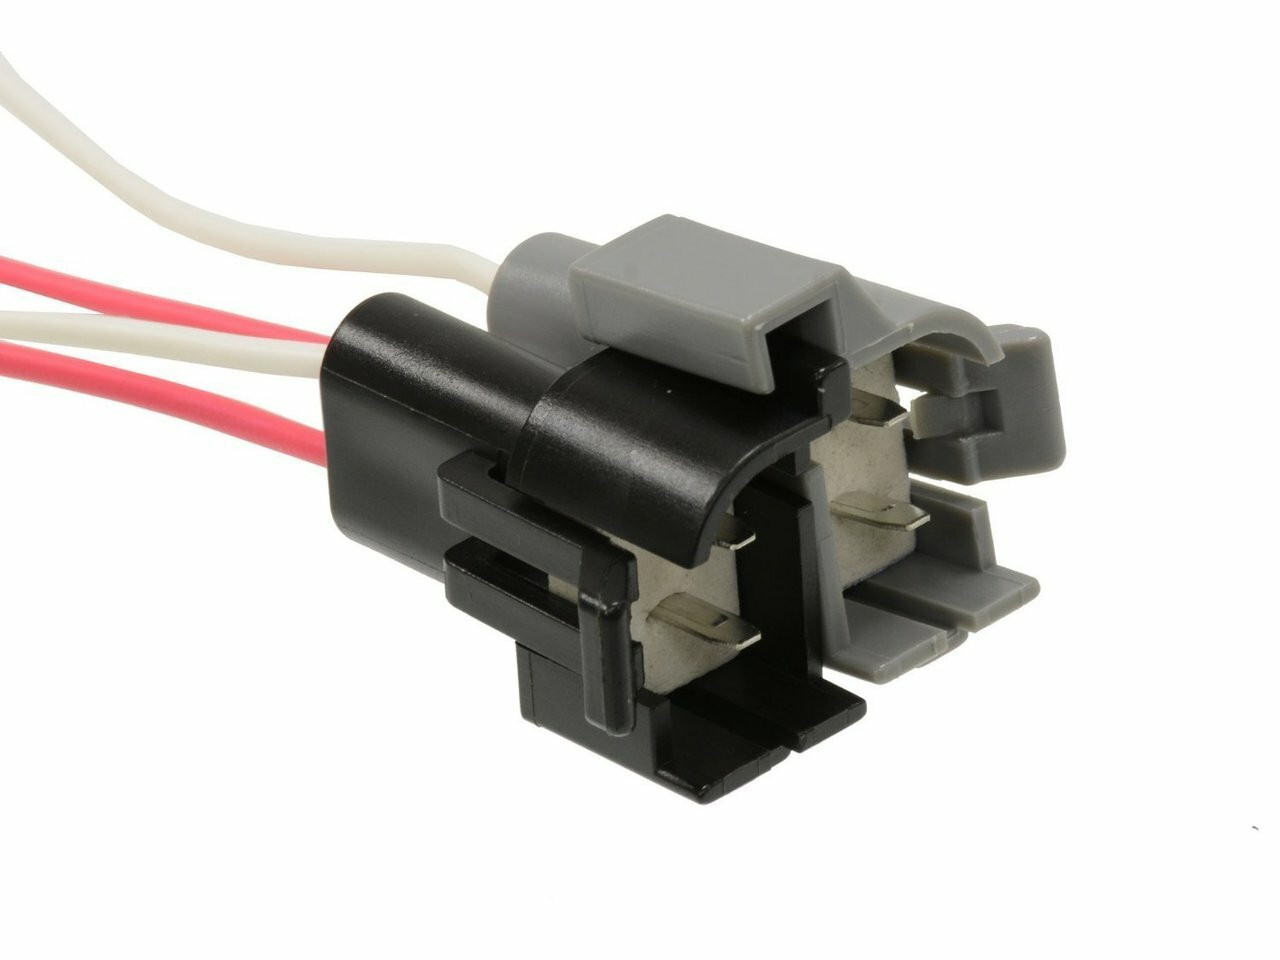 Gm Tbi Wiring Harness on gm tbi connectors, gm tbi harness, gm tbi parts, chevrolet 350 ignition wiring, chevy truck fuel pump wiring, gm 350 tbi performance,